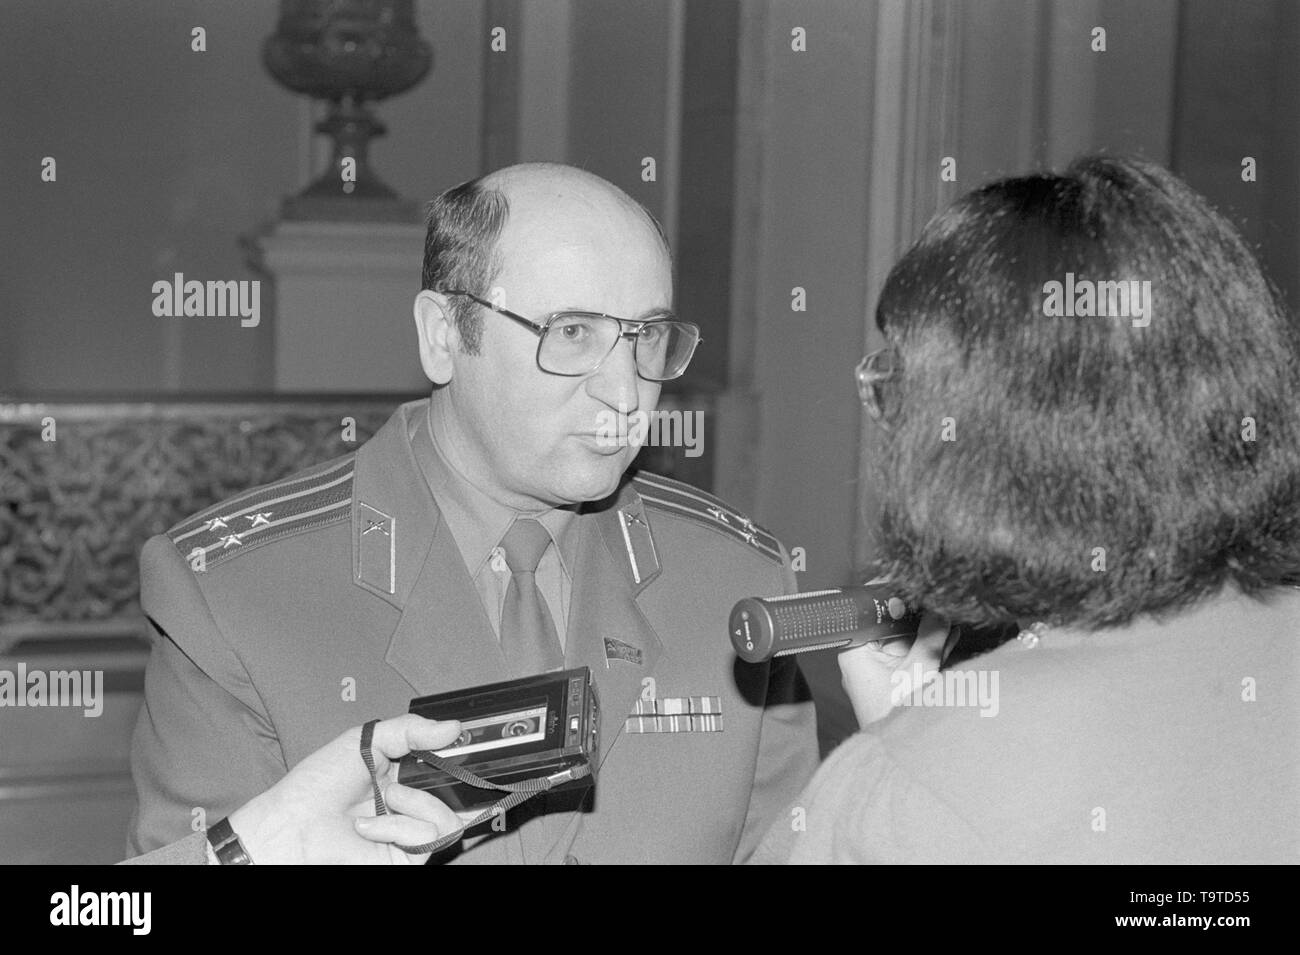 Moscow, Russia - March 28, 1991: People's deputy colonel Nikolai Semyonovich Petrushenko talks to correspondent at 3d extraordinary Congress of people's deputies of russian RSFSR. - Stock Image